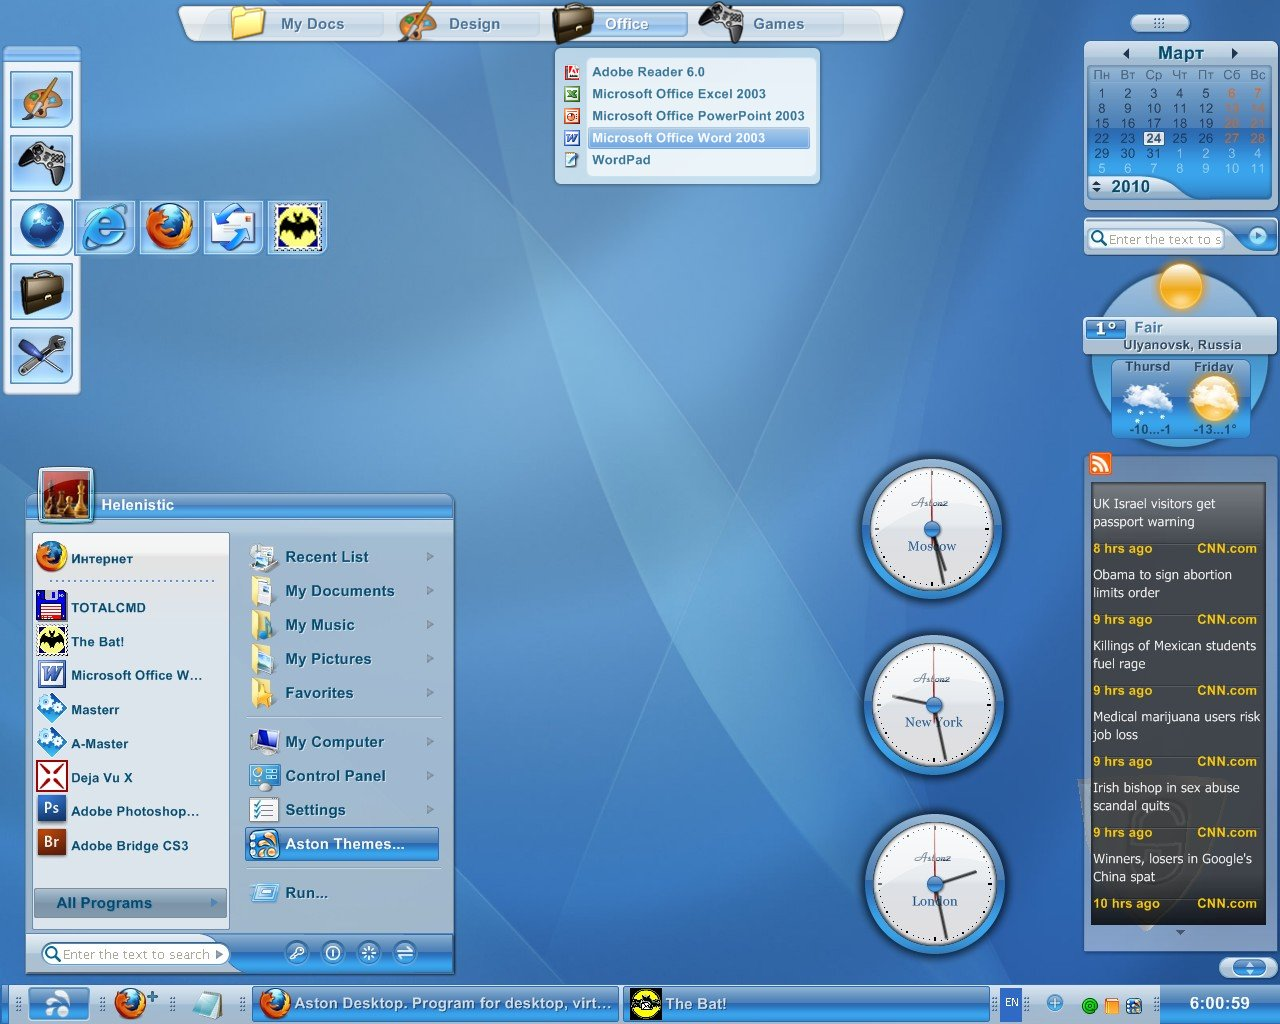 aston, themes fox winxp, skins for winxp, desktop, themes,plugins, astonshell, wallpapers, skins, gladiators, nice